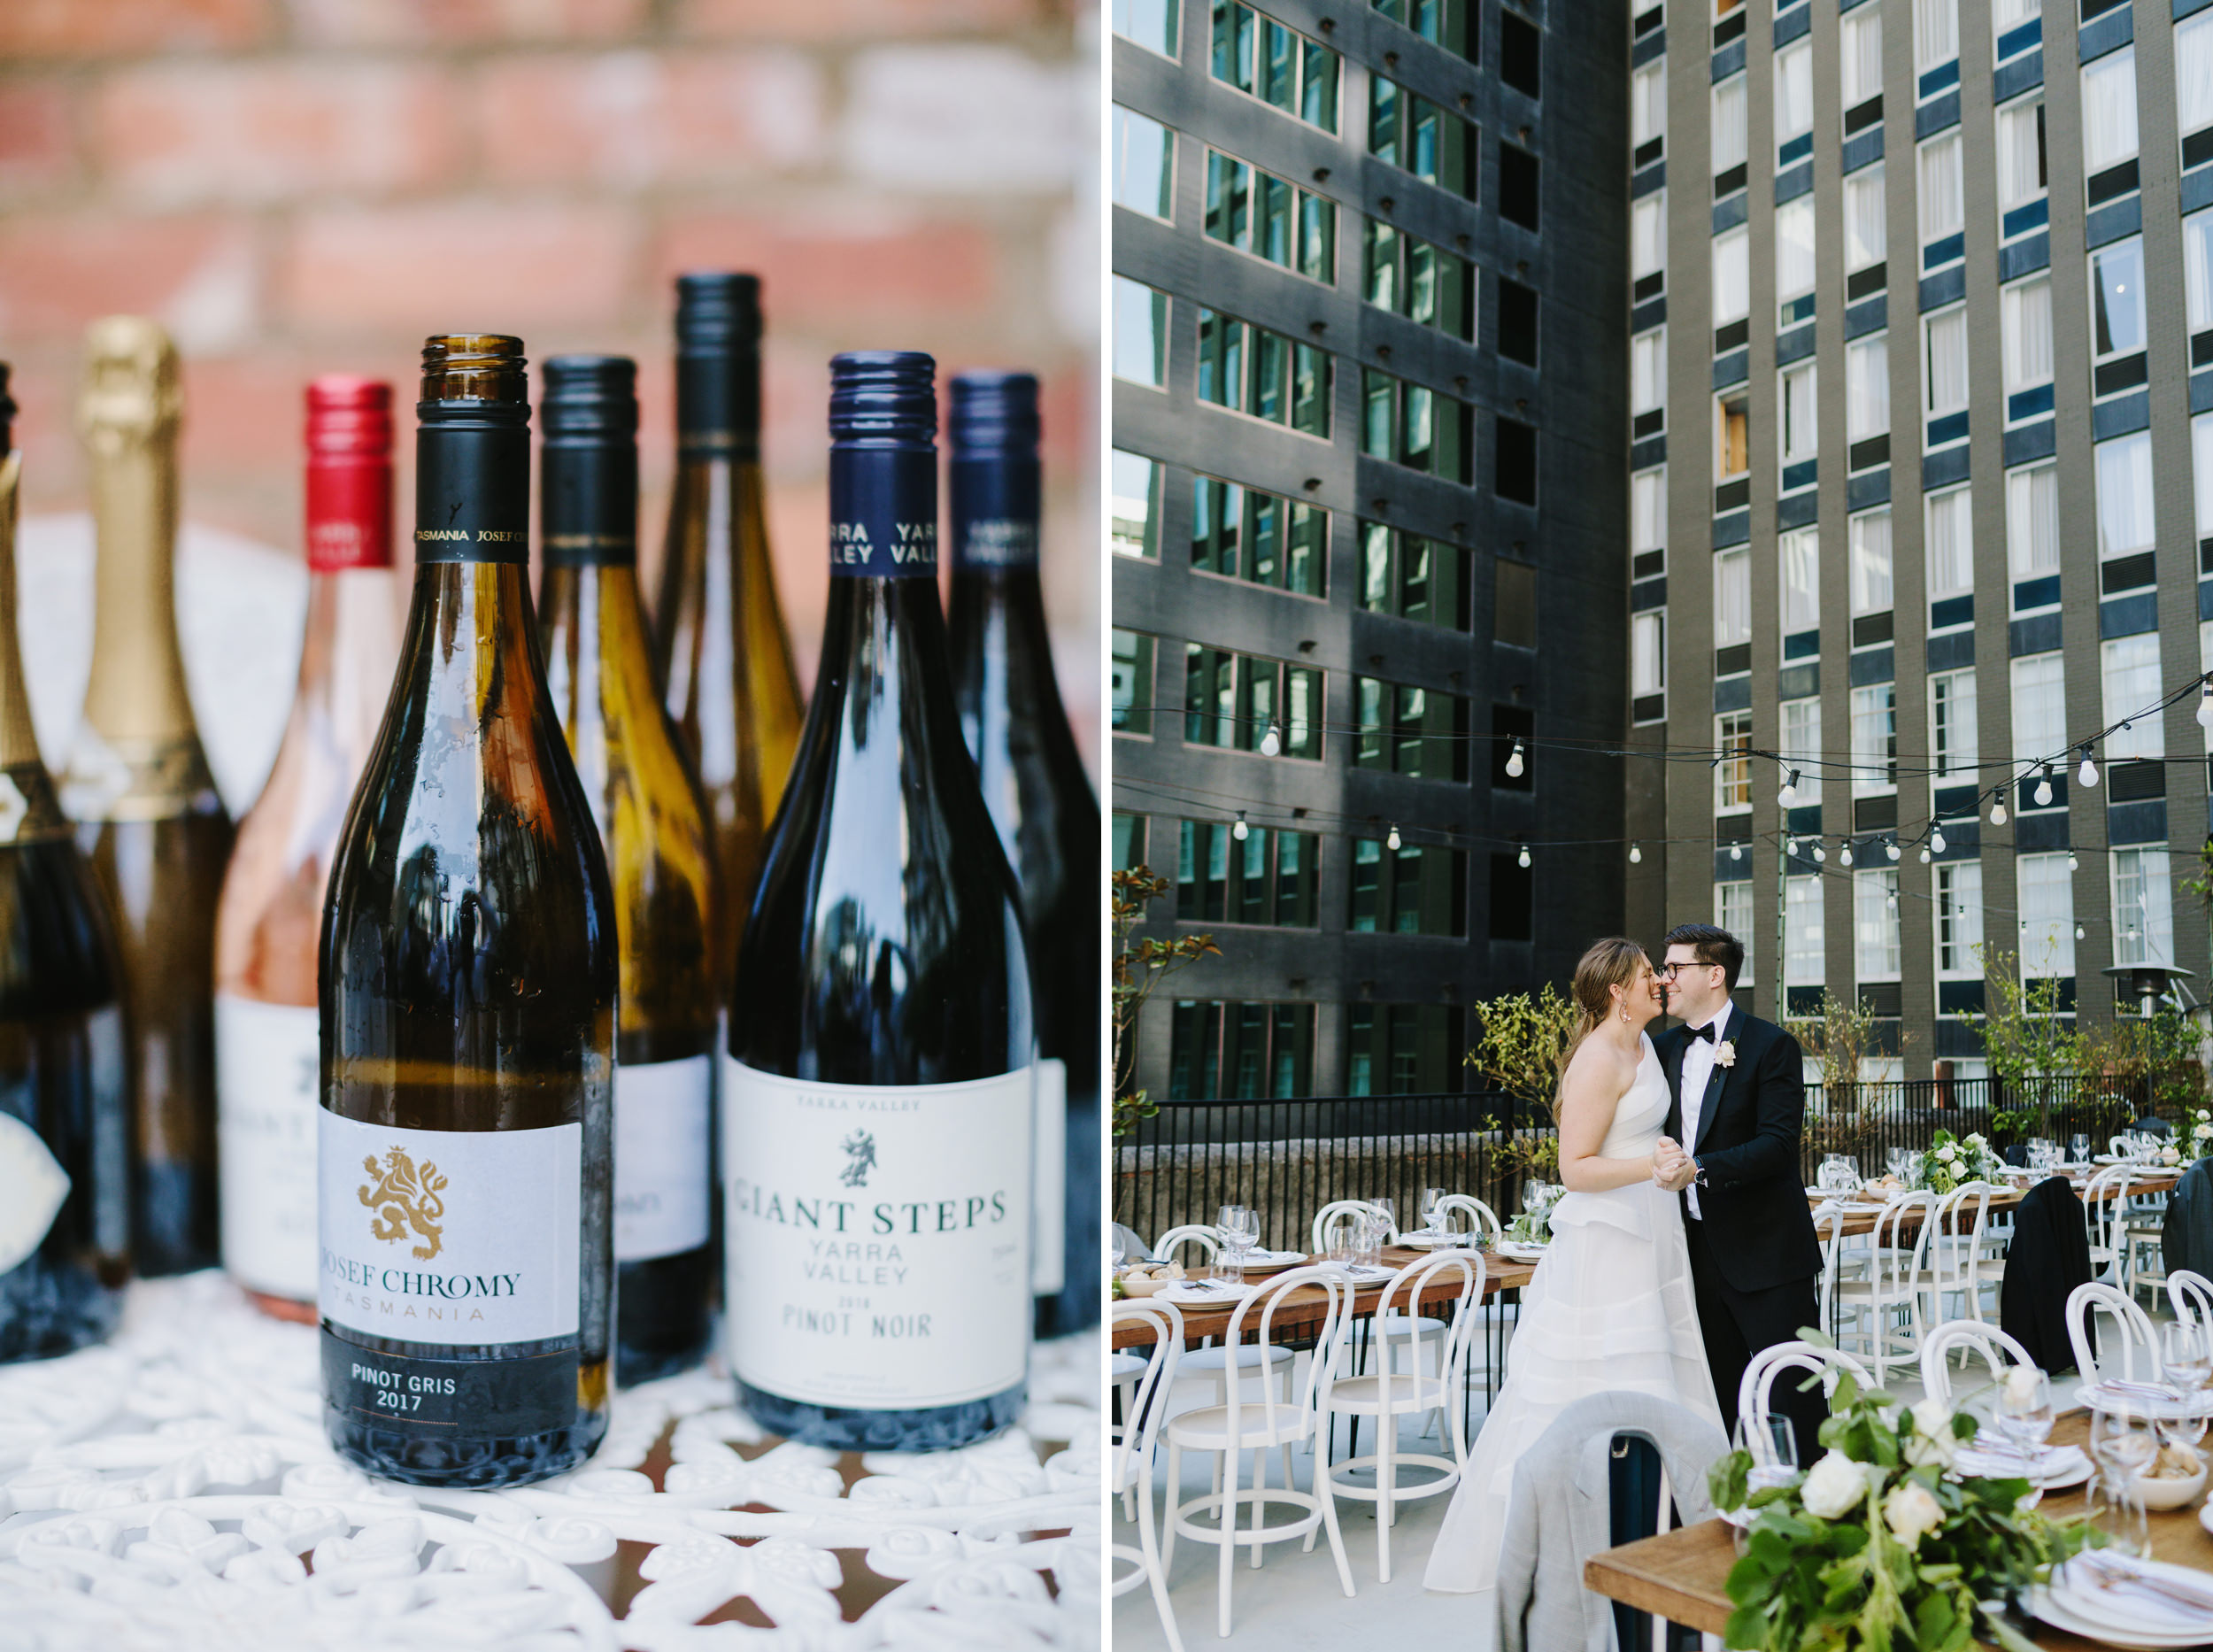 Melbourne_City_Rooftop_Wedding_Tyson_Brigette087.JPG